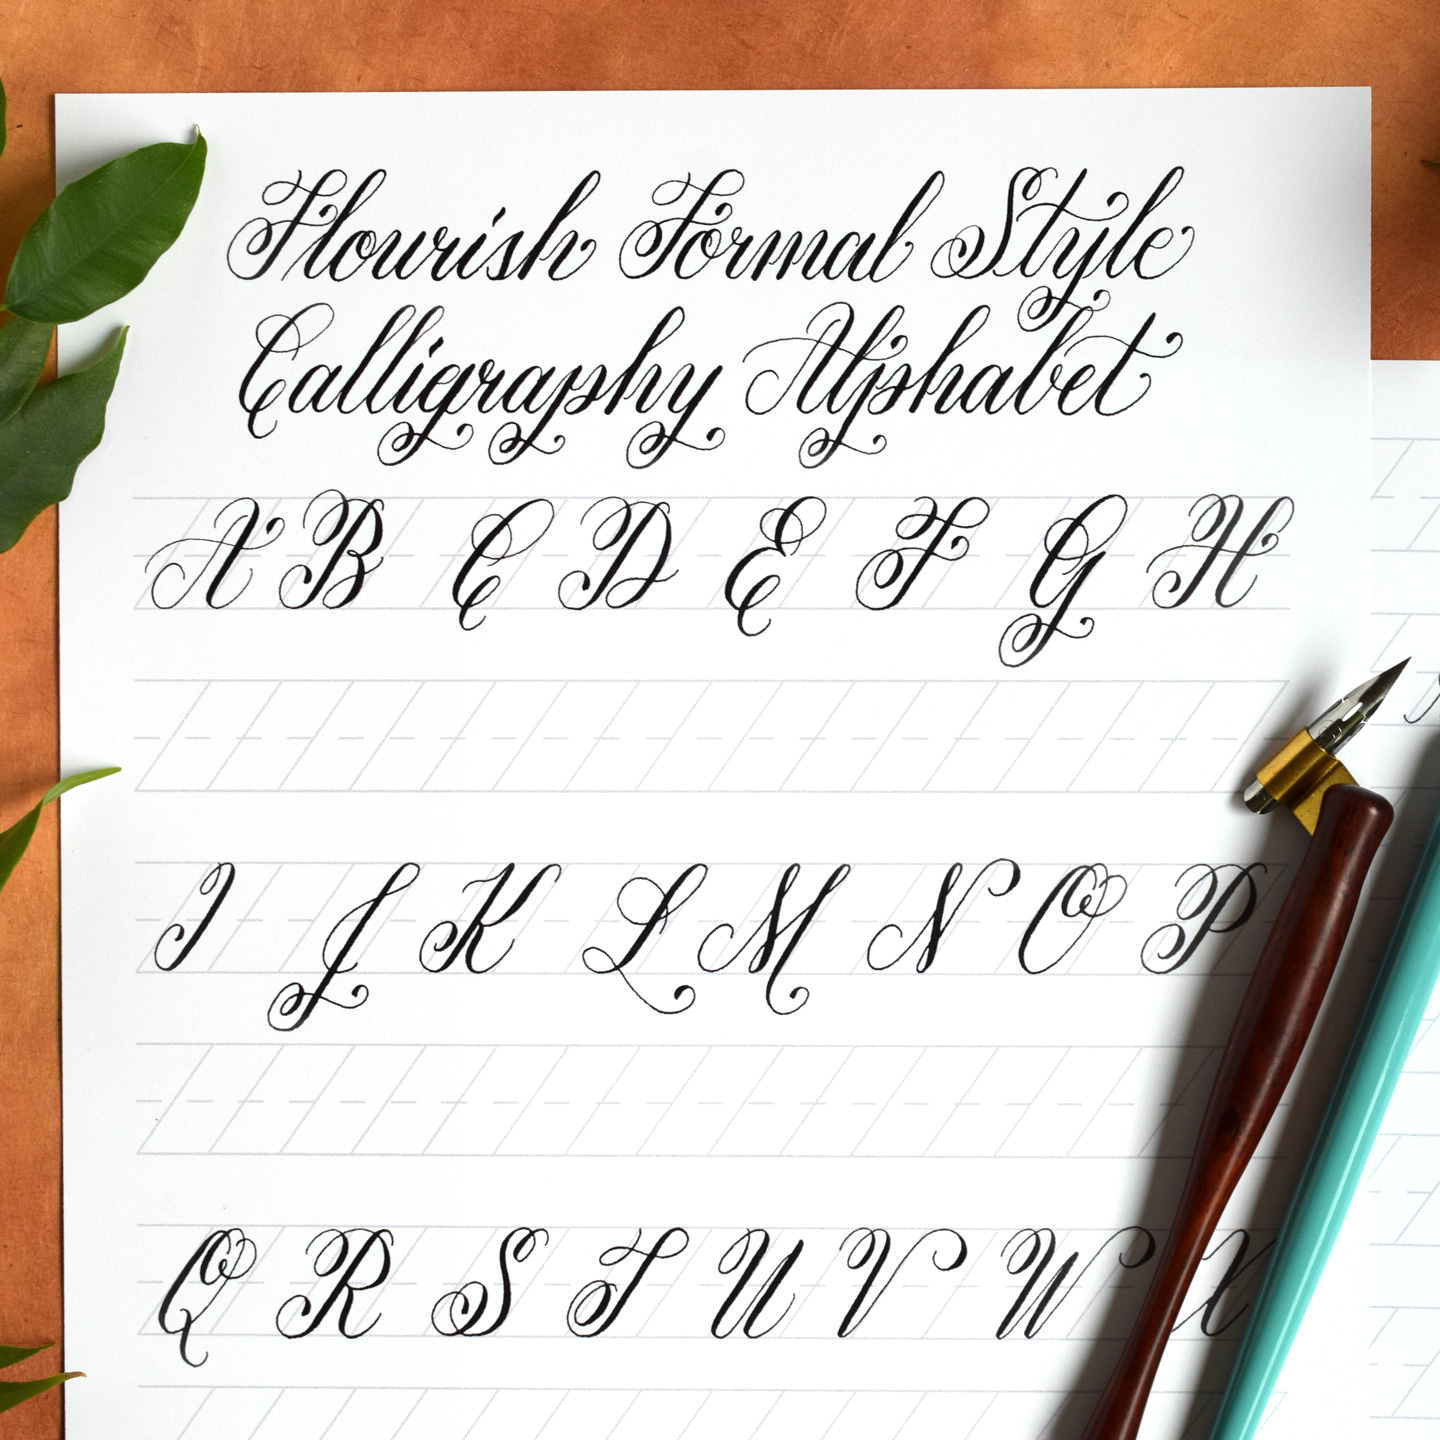 Free Basic Flourish Formal Calligraphy Worksheet